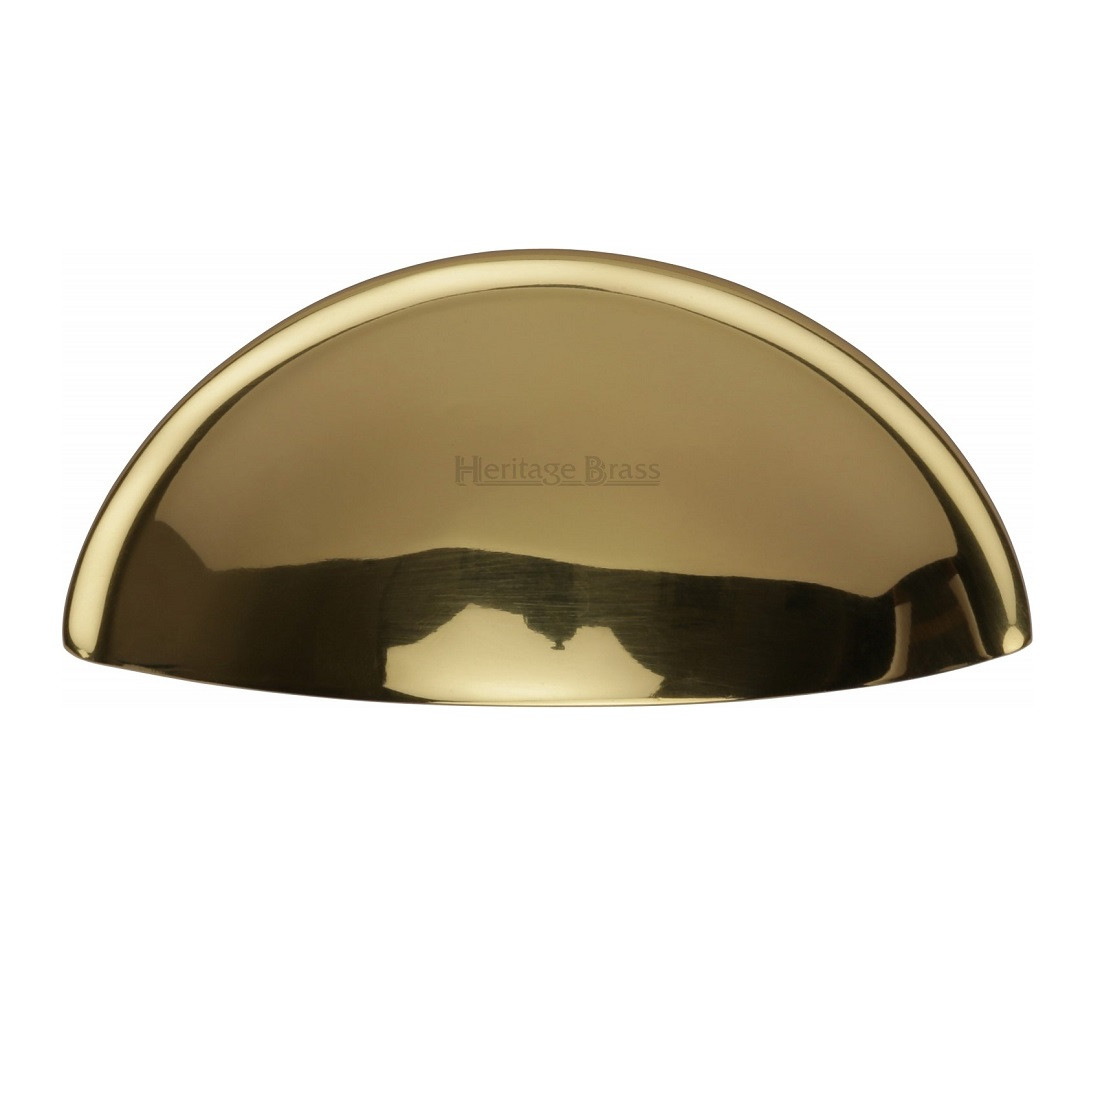 m marcus cup handle drawer pull polished brass